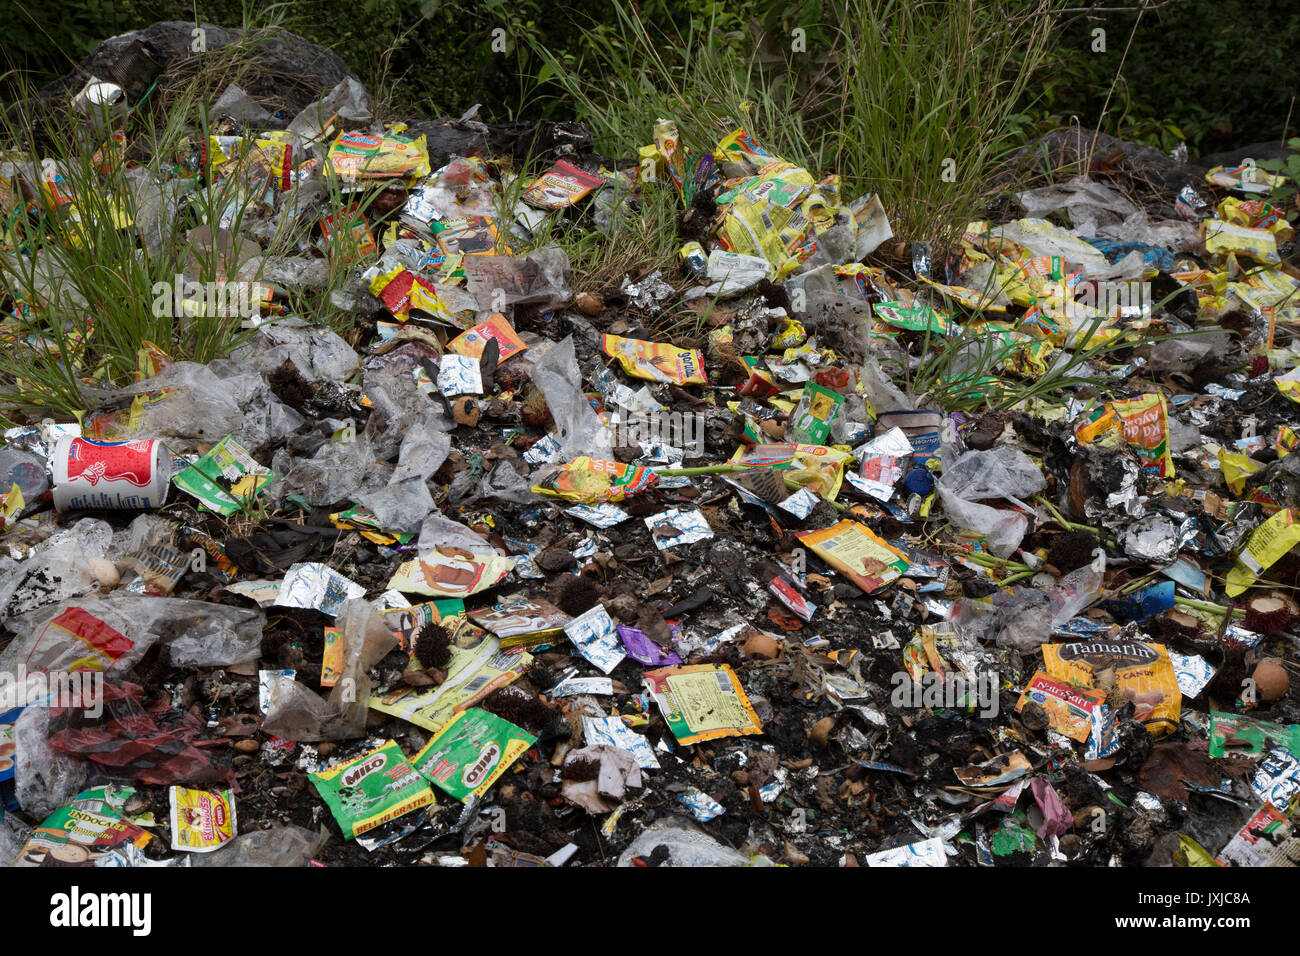 Plastic wrappers and other garbage discarded down bank - Stock Image